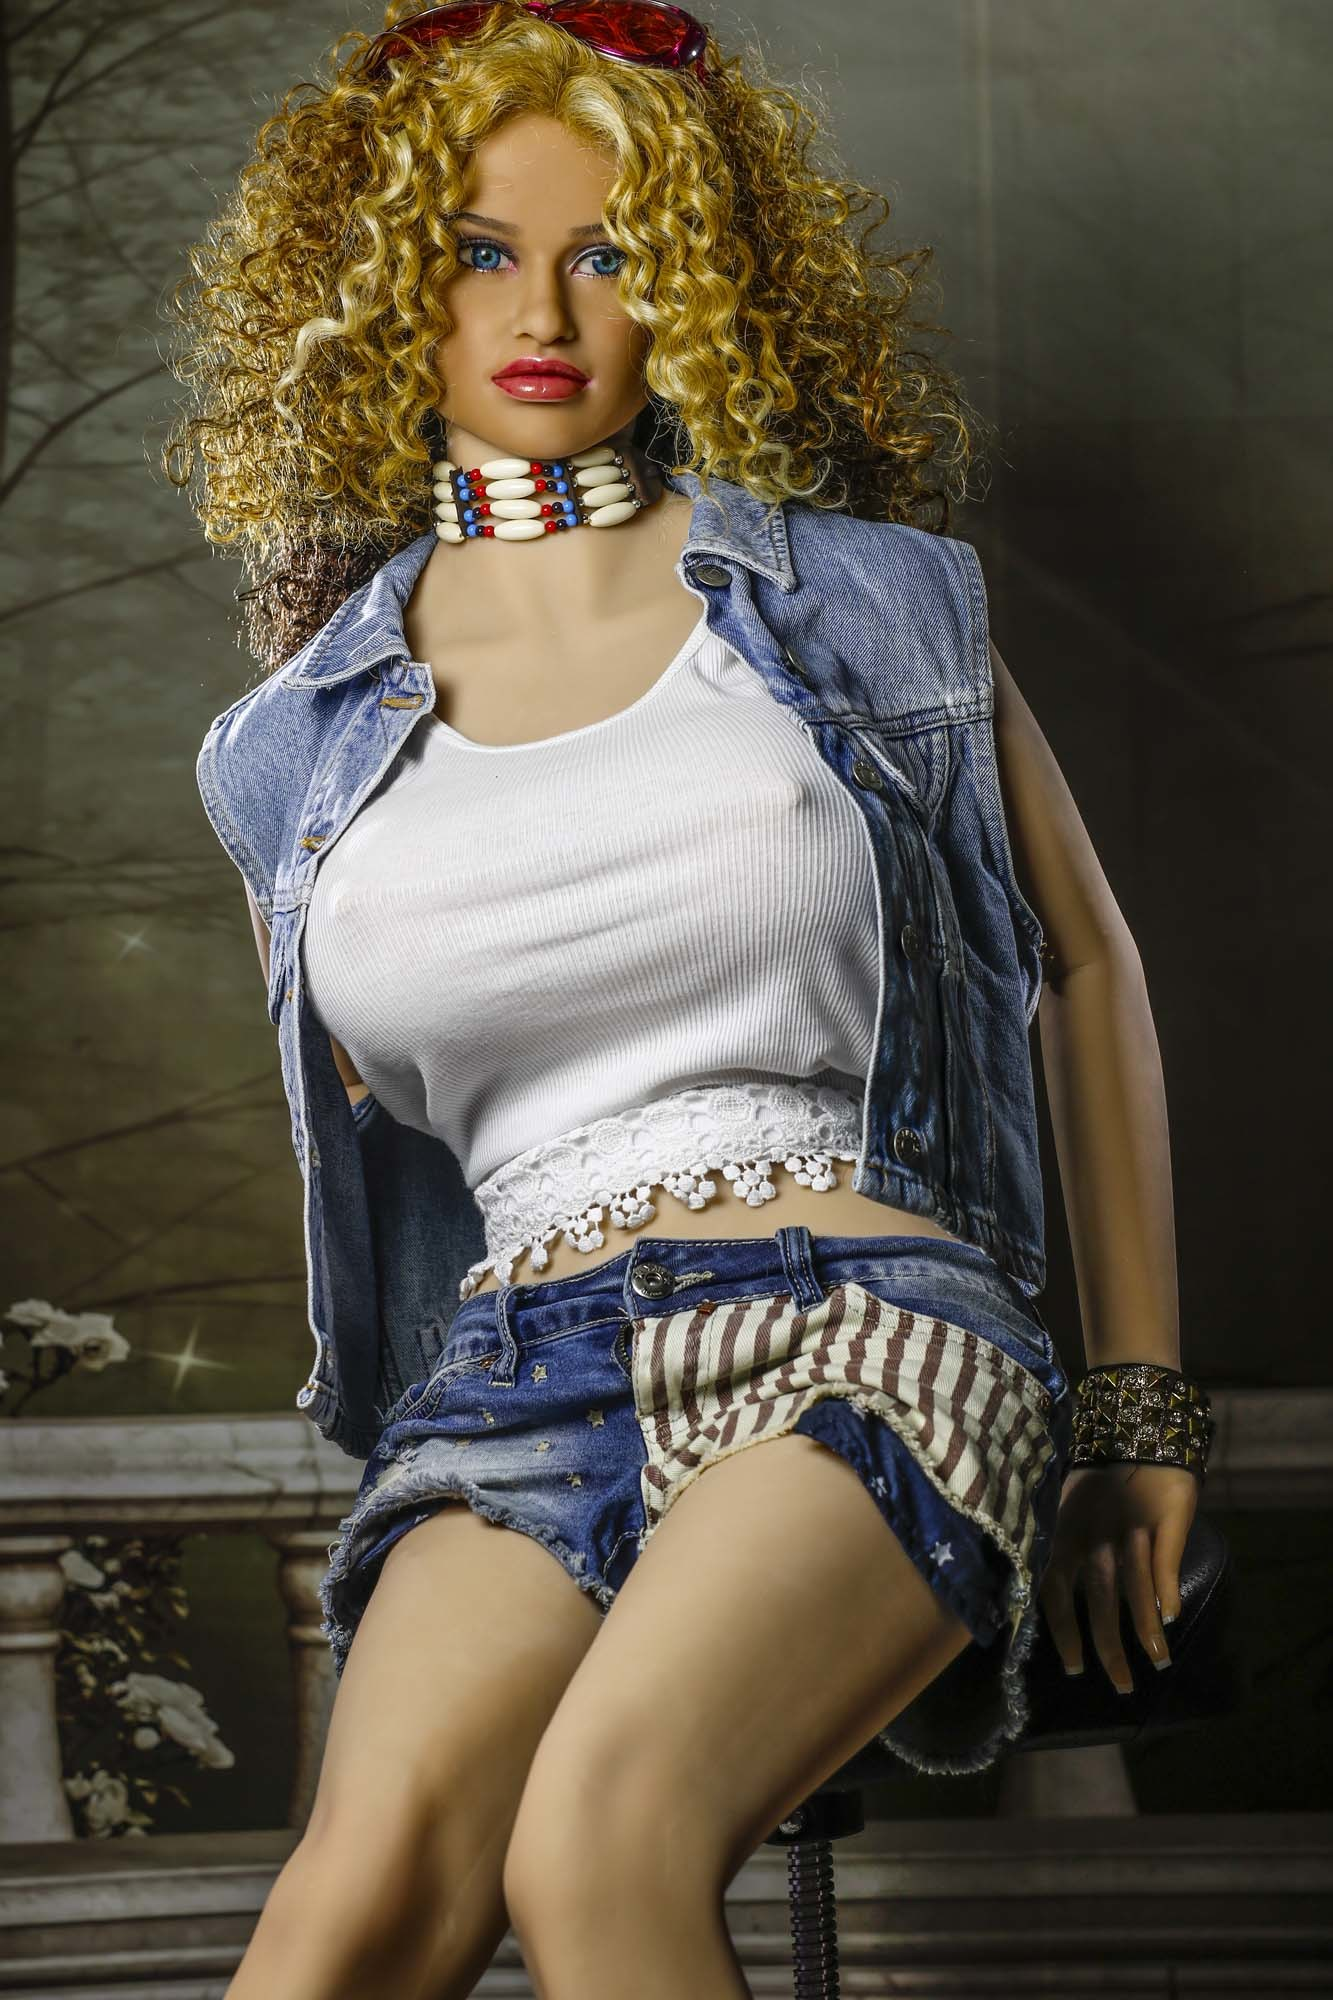 Sex Love Doll Artificial High Simulation Vagina Sex Doll Western Face Doll Good Price Good Support for Agency